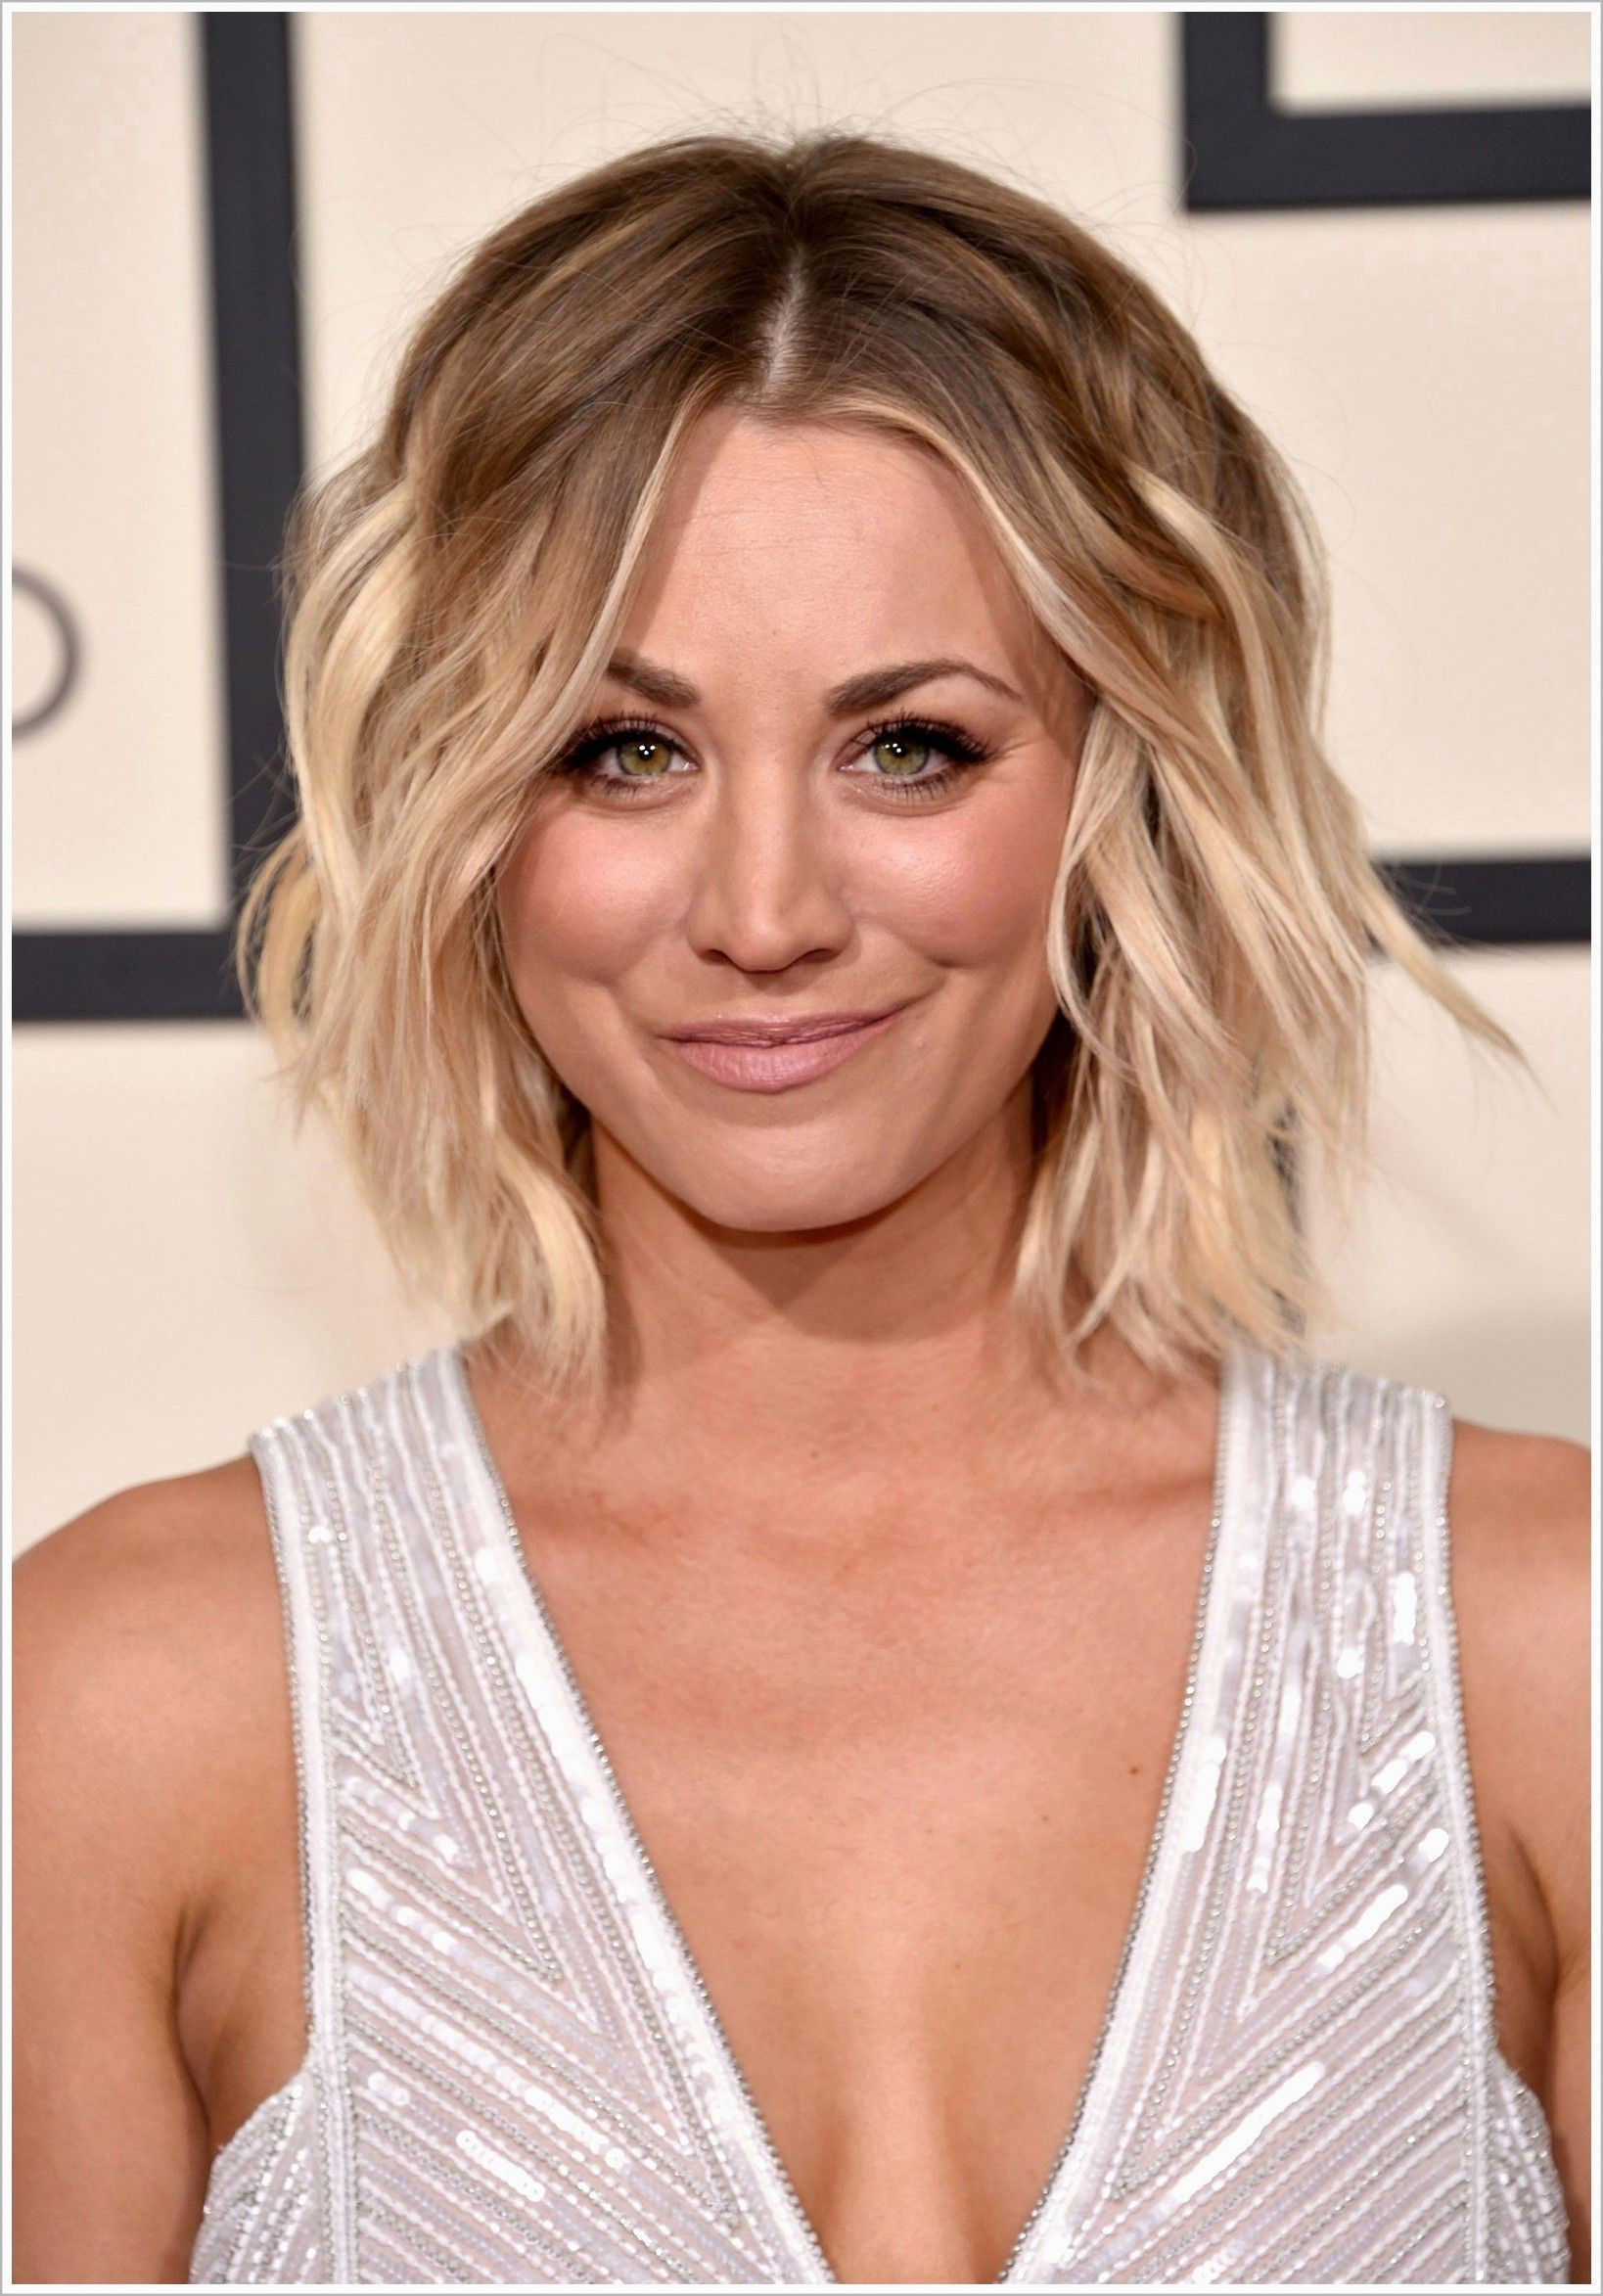 Awesome Frisuren Bob Fransig Awesome Bob Bobfrisurenfransig Fransig Frisuren Cool Hairstyles Long Hair Styles Kaley Cuoco Hair